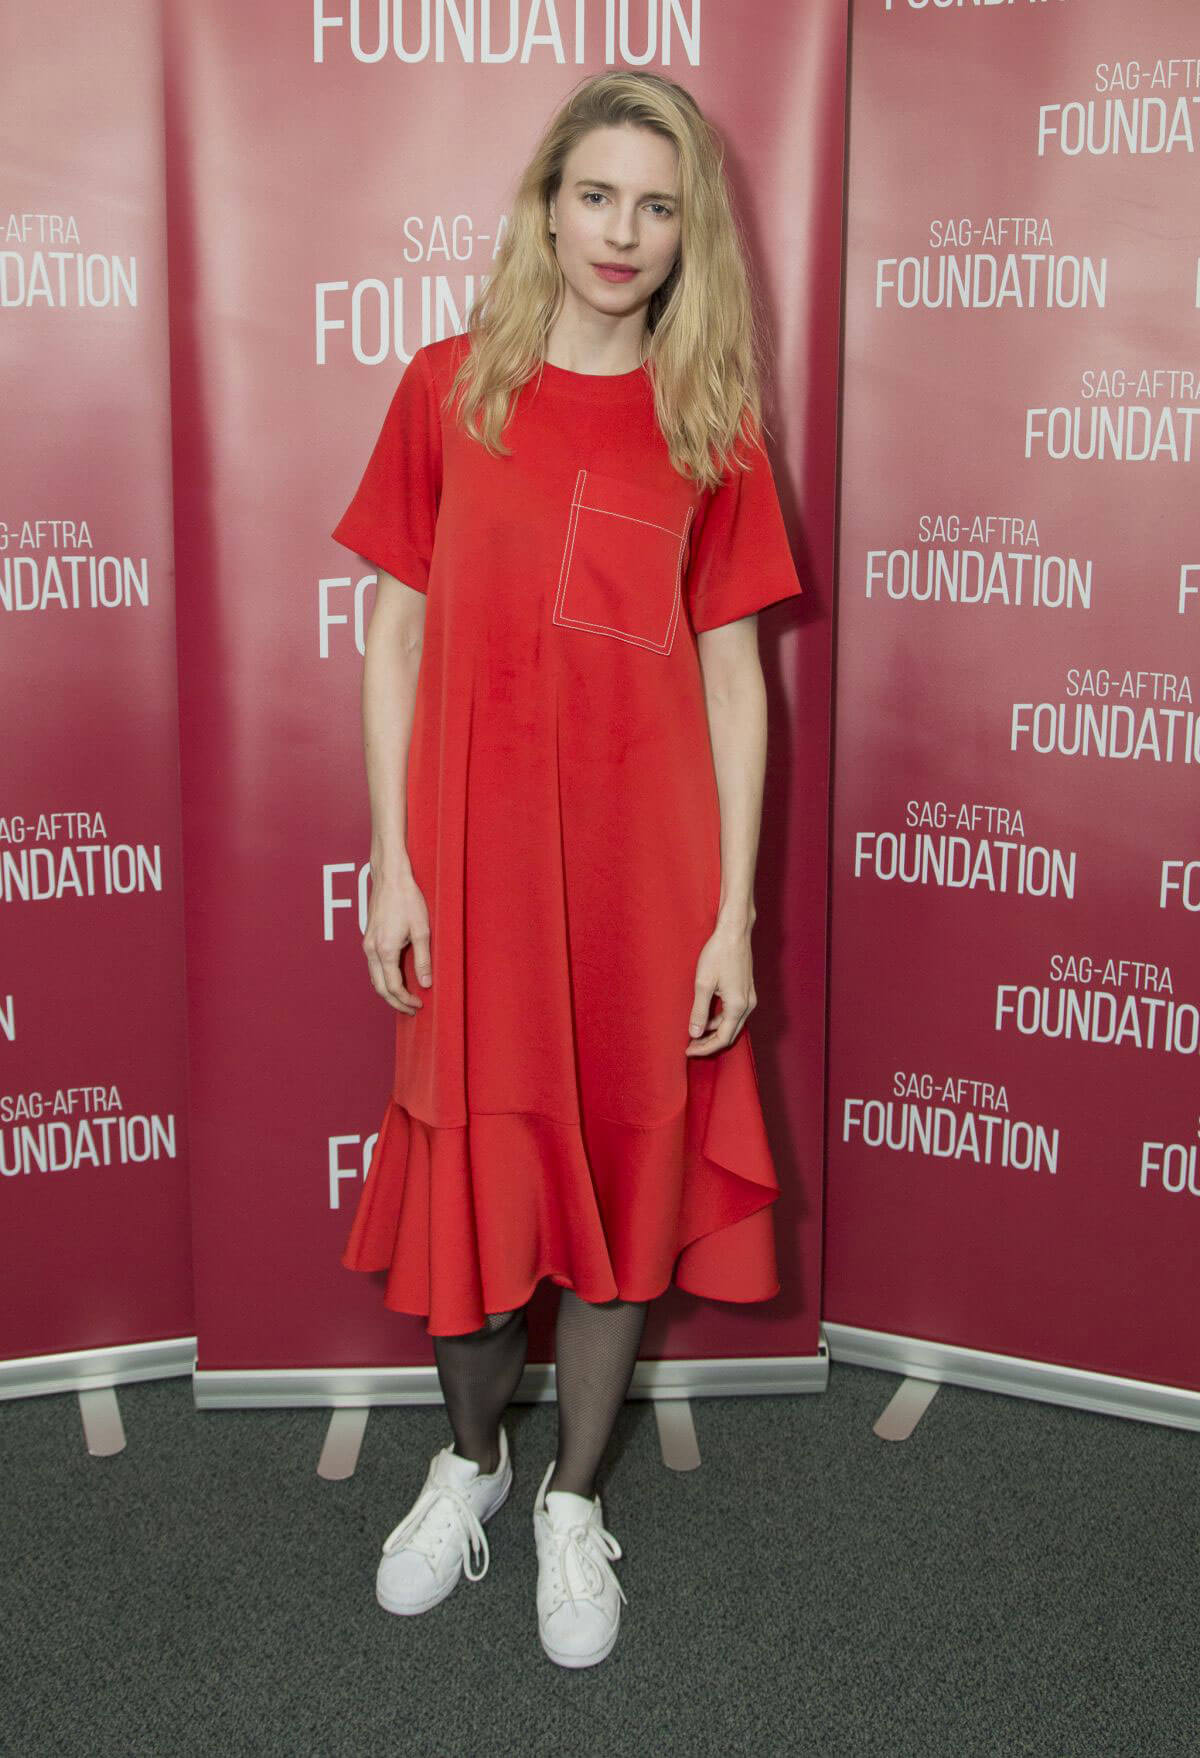 Brit Marling Stills at SAG-AFTRA Foundation – The Business – Creative Chemistry- Collaboration